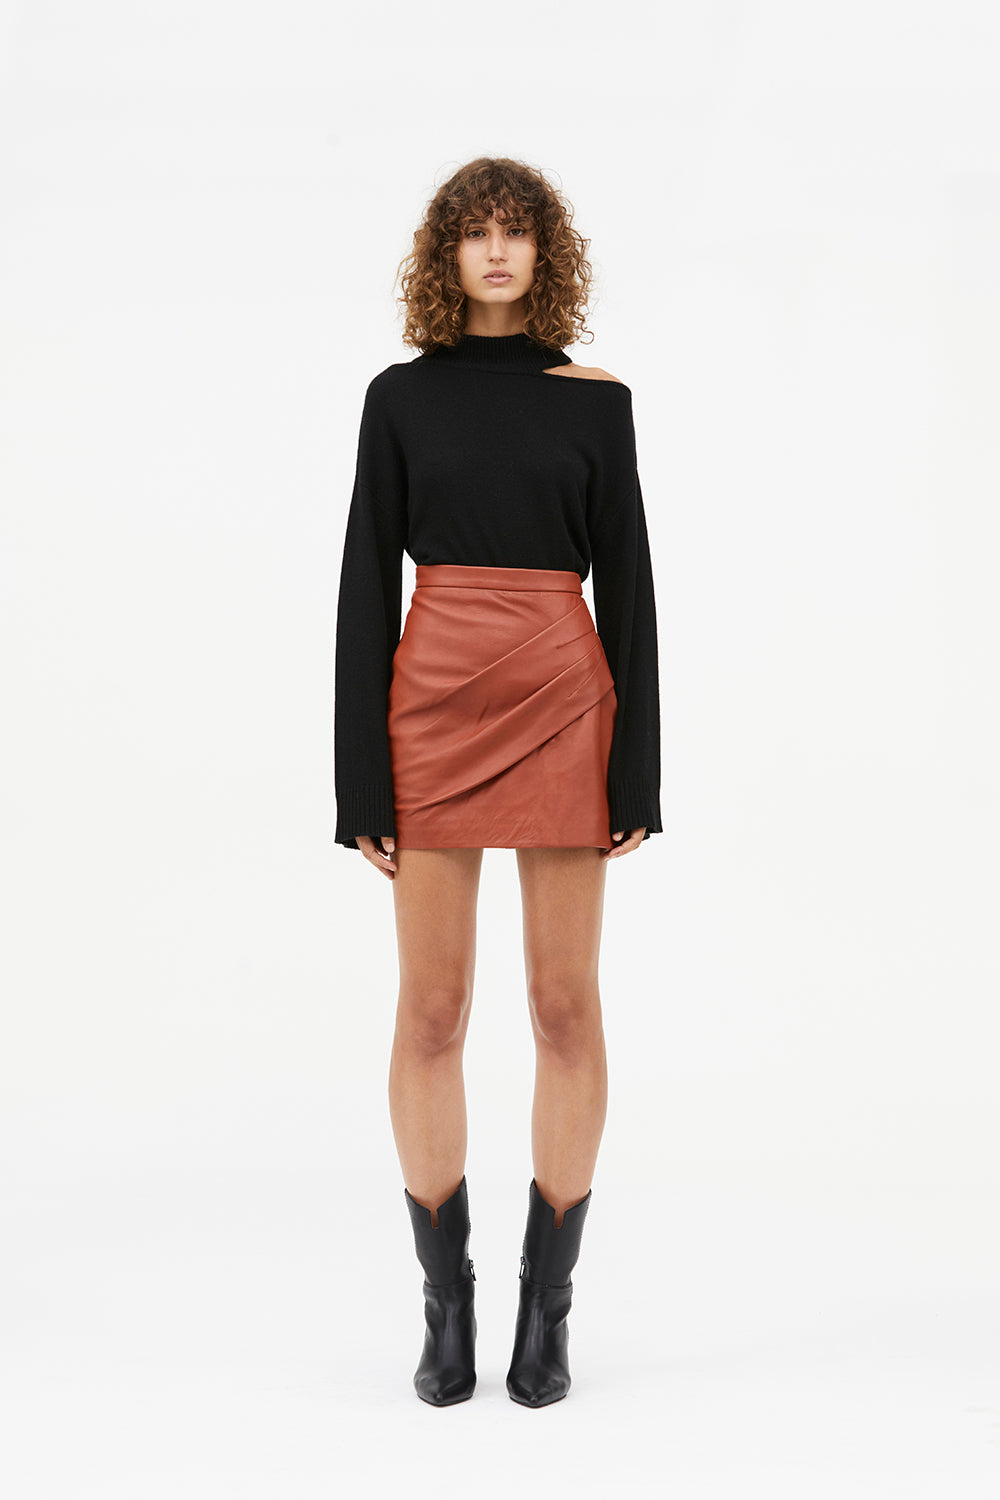 OPEN SEASON LEATHER SKIRT